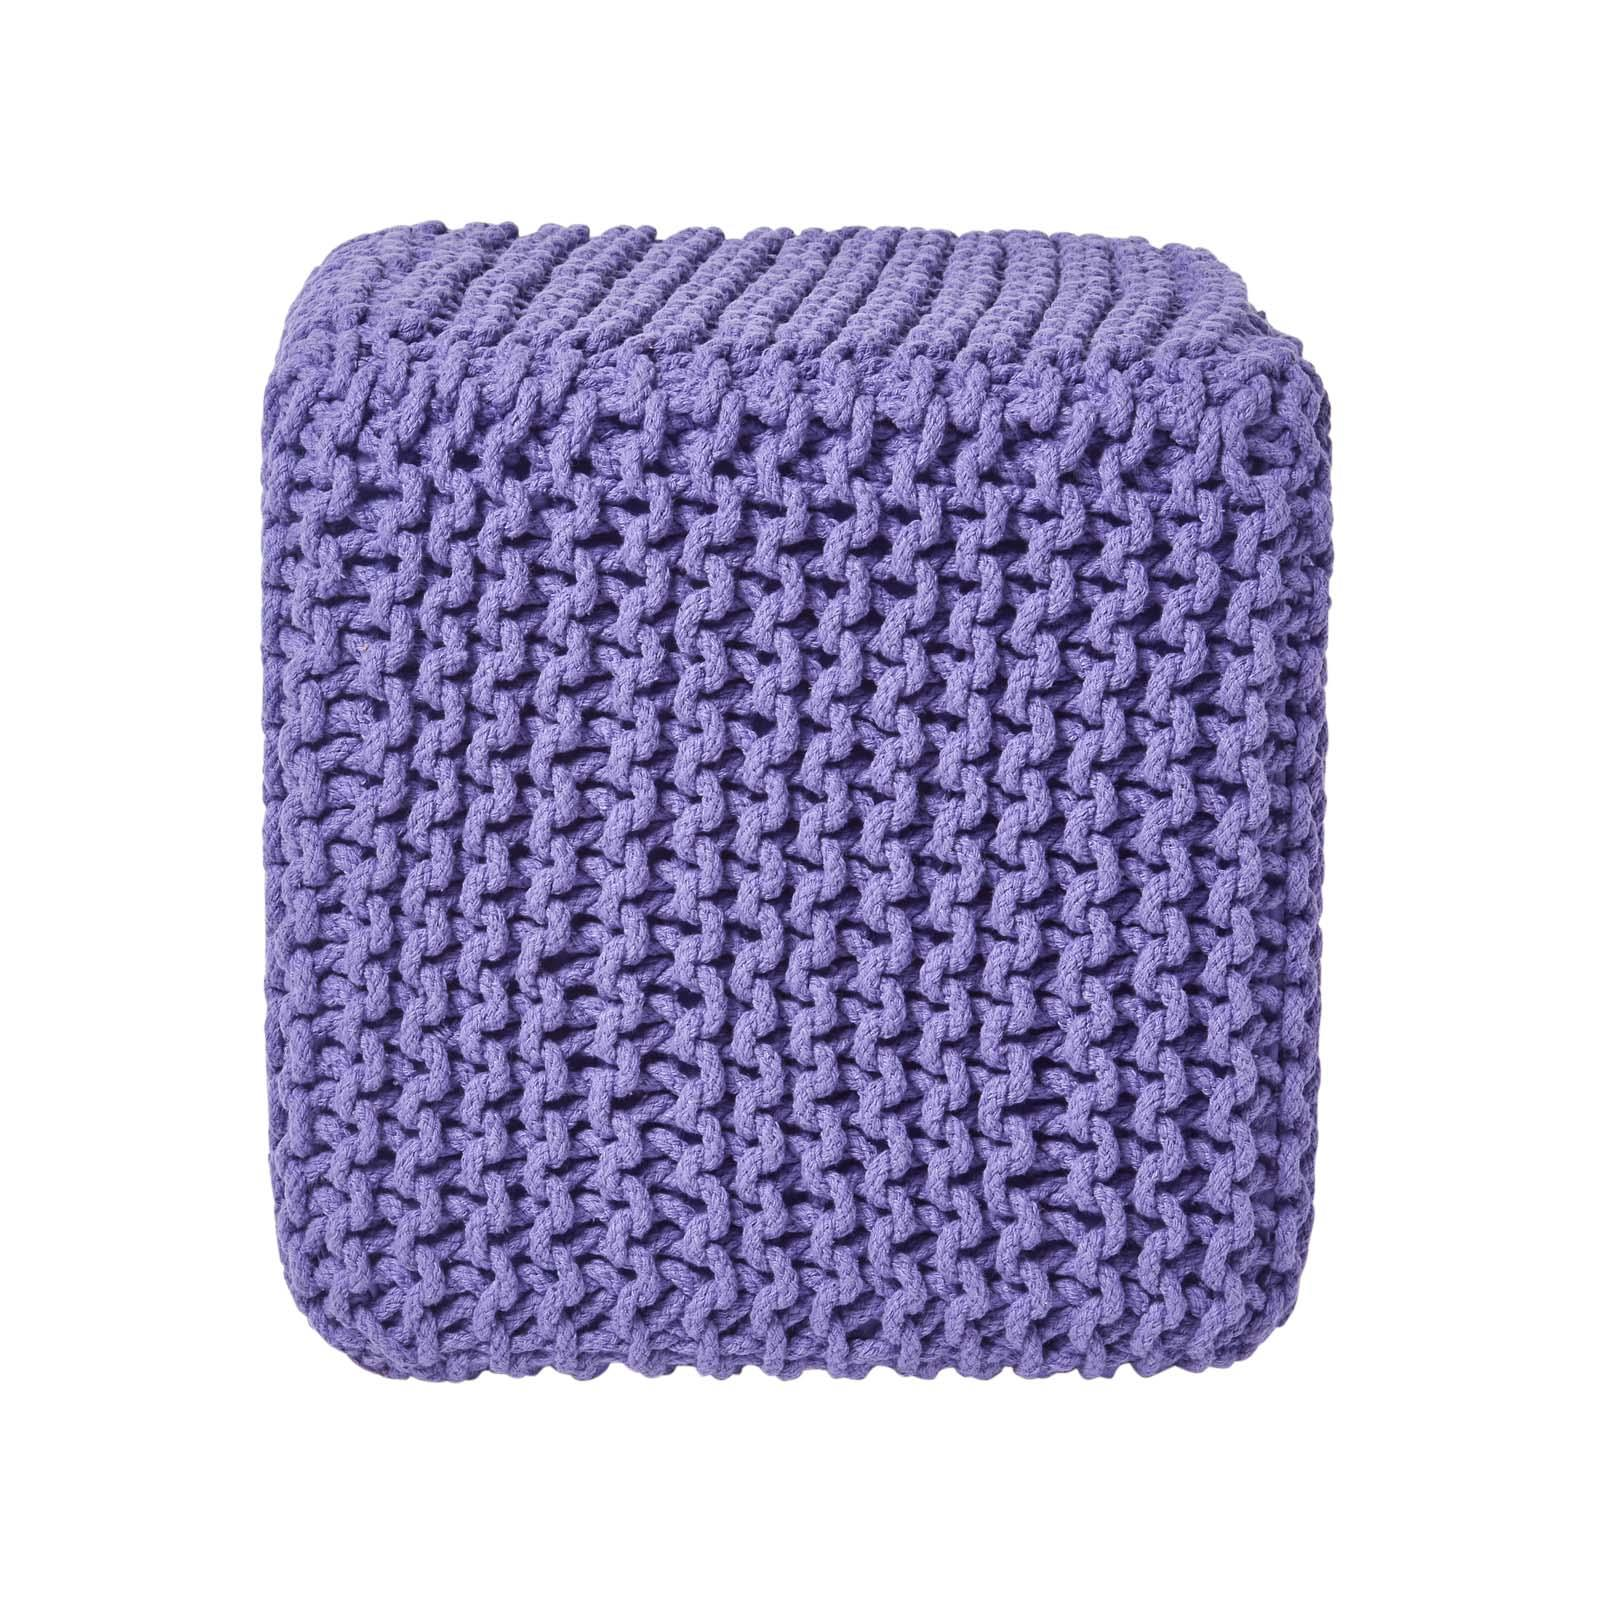 Hand-Knitted-100-Cotton-Pouffes-Round-Sphere-Or-Cube-Square-Chunky-Footstools thumbnail 164